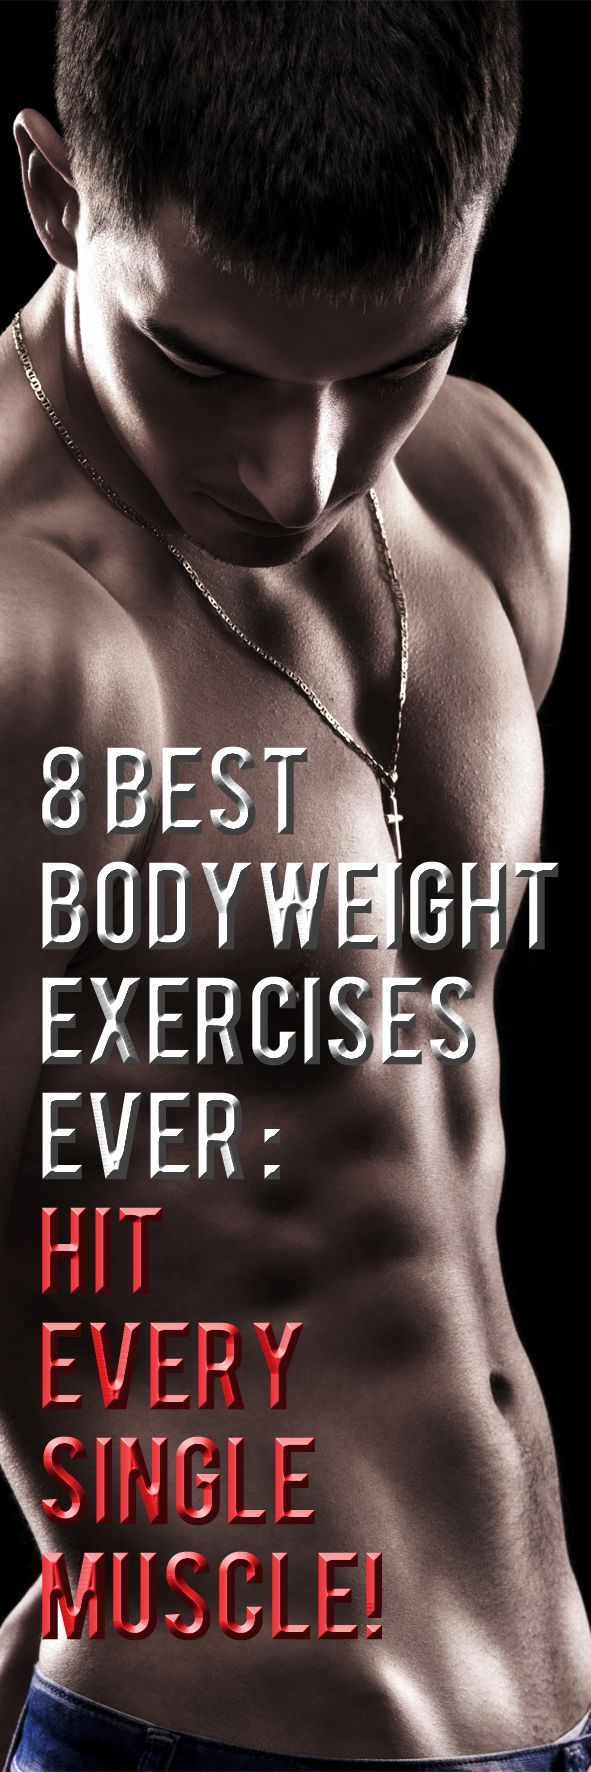 With so many bodyweight exercises to choose from, picking the 8 best was certainly a challenge. That said, in this video I show you the 8 best bodyweight exercises you can do and how you can cover all the major muscles in your body with them.